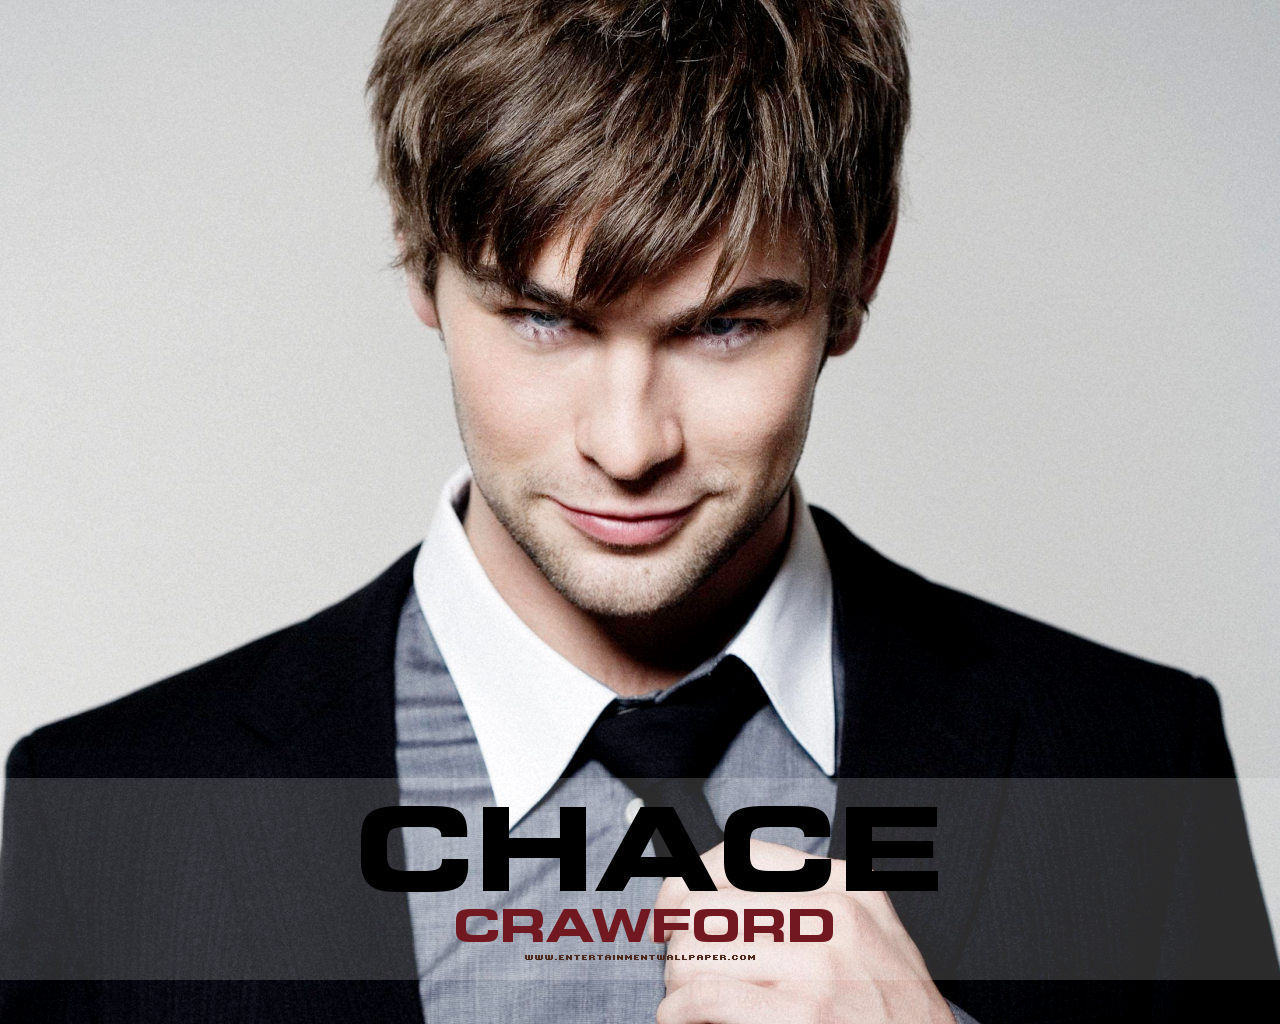 Chace Crawford net worth